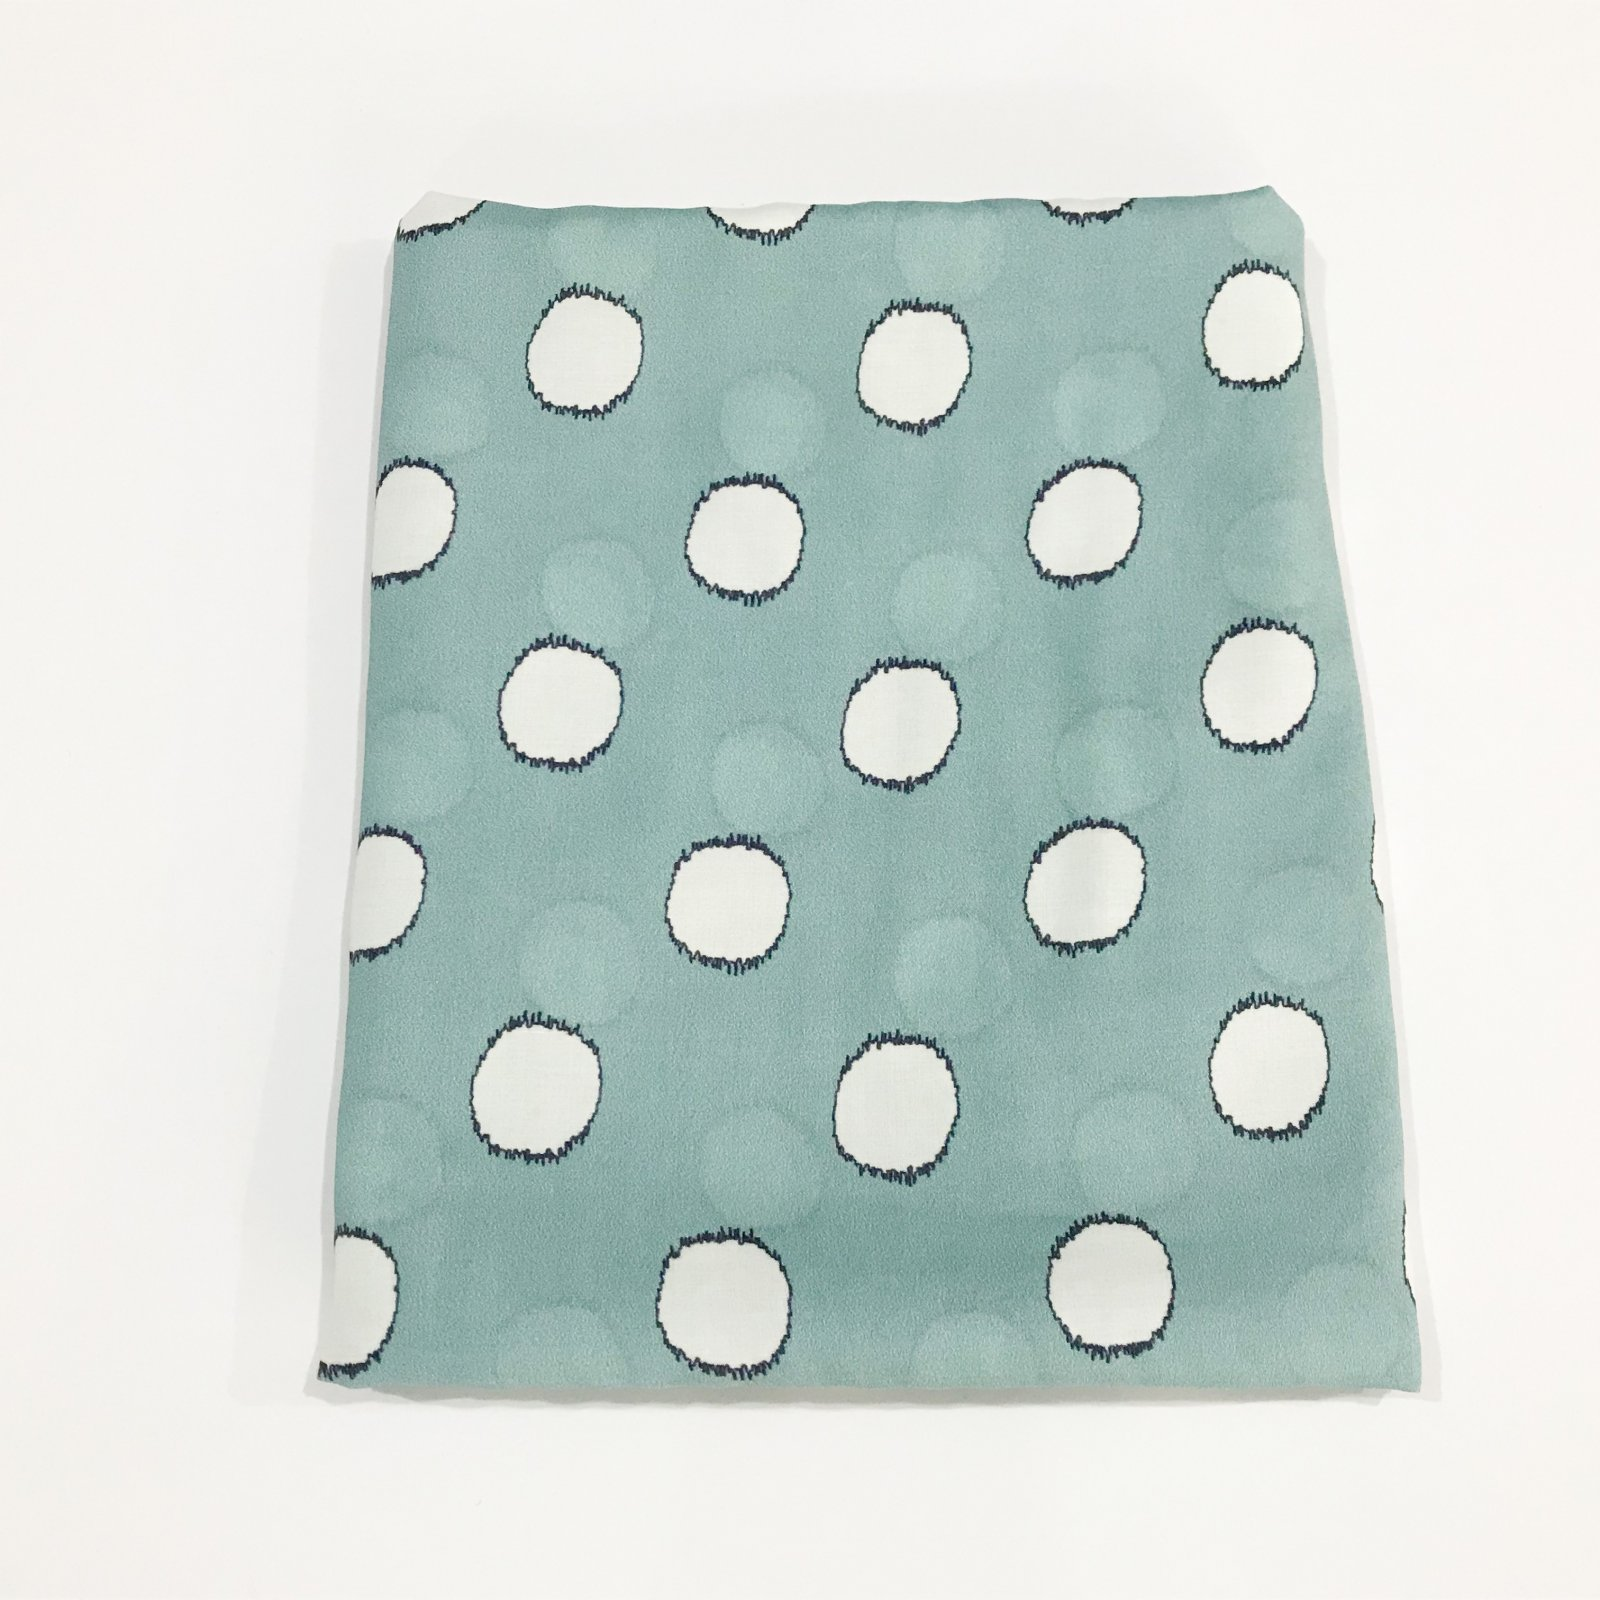 2 1/3 yards - Lady McElroy - Spot the Difference in Spearmint